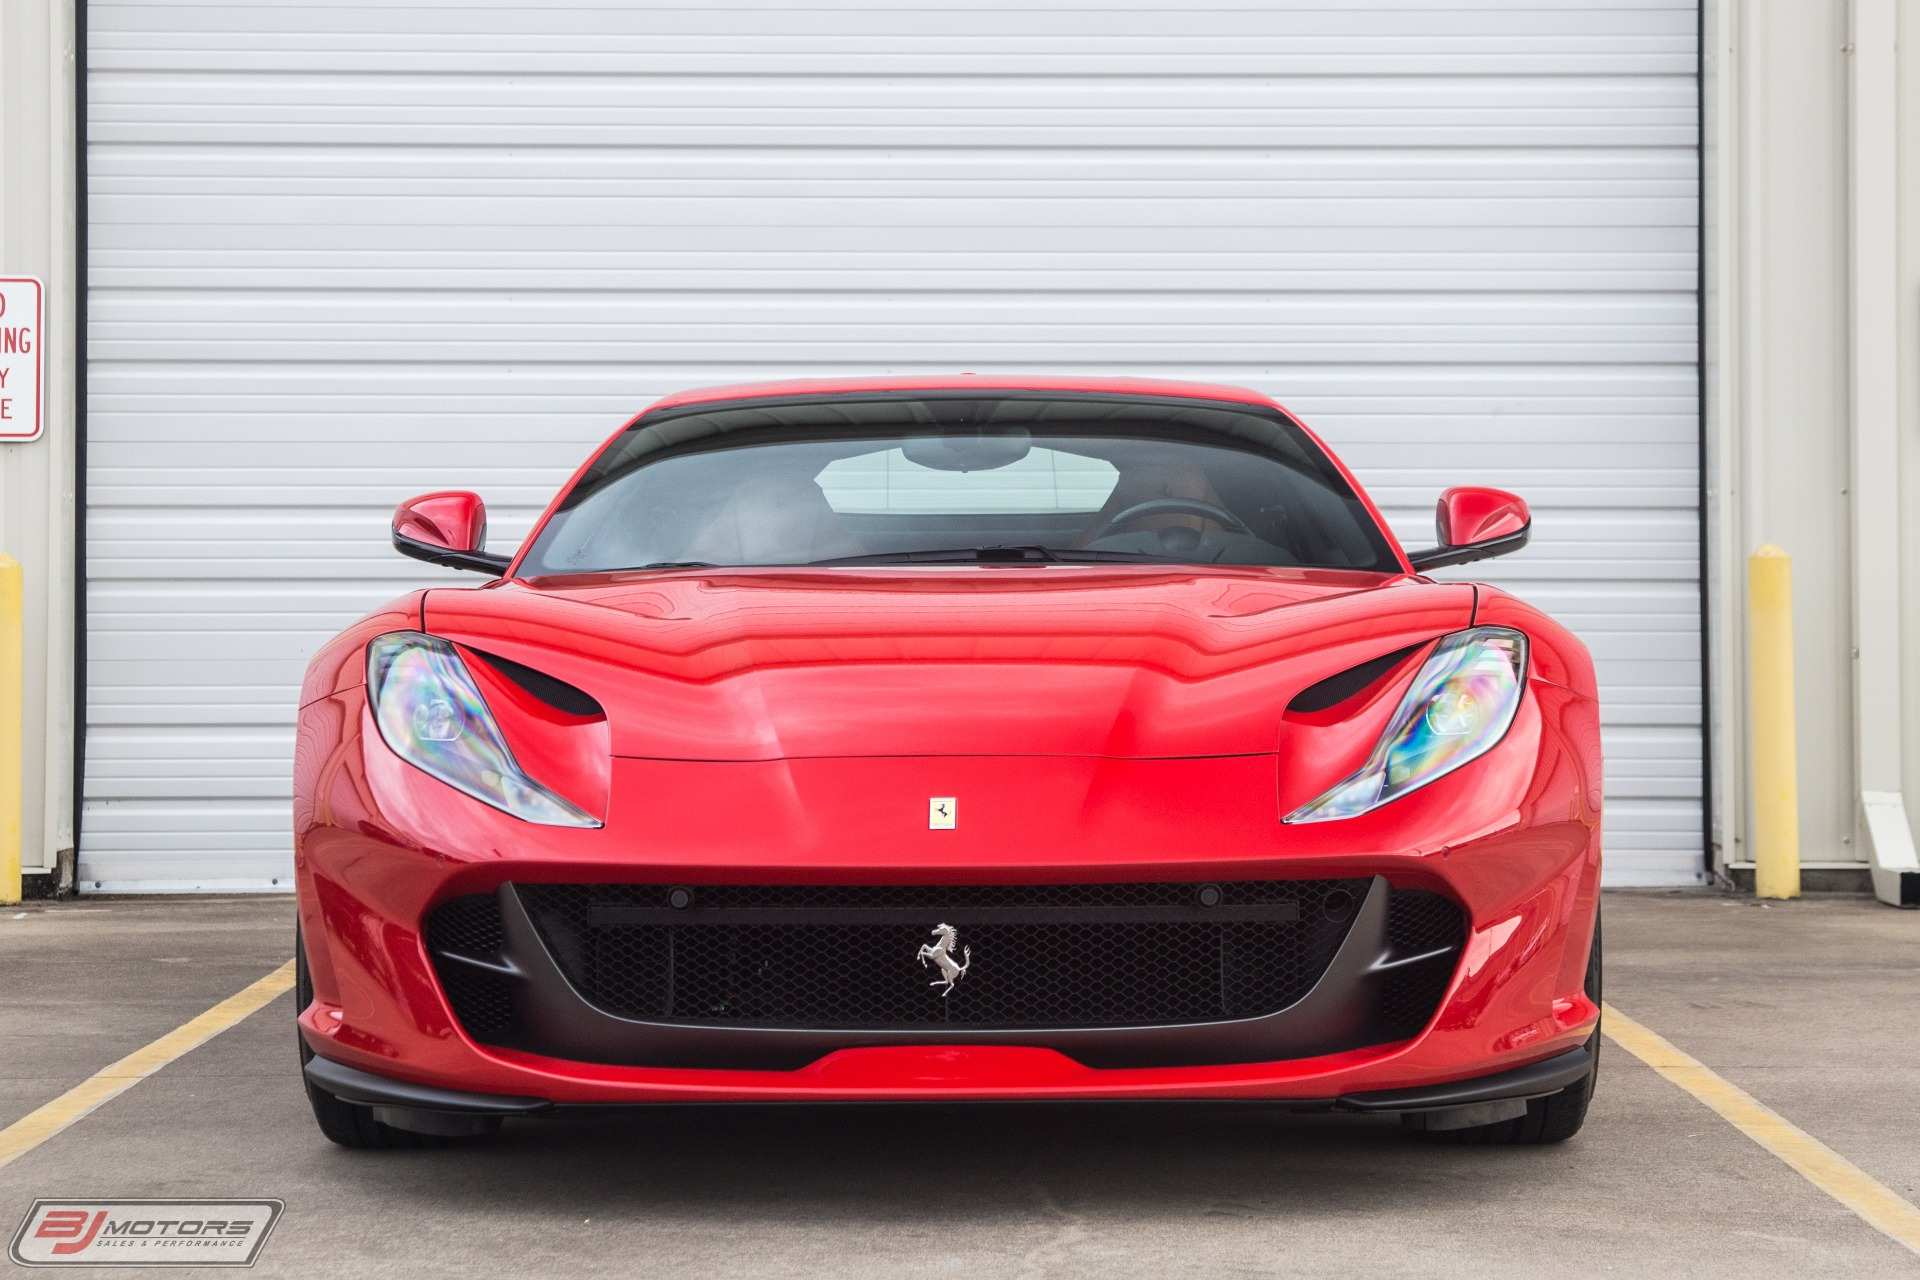 17 Great 2019 Ferrari Superfast Interior Style with 2019 Ferrari Superfast Interior